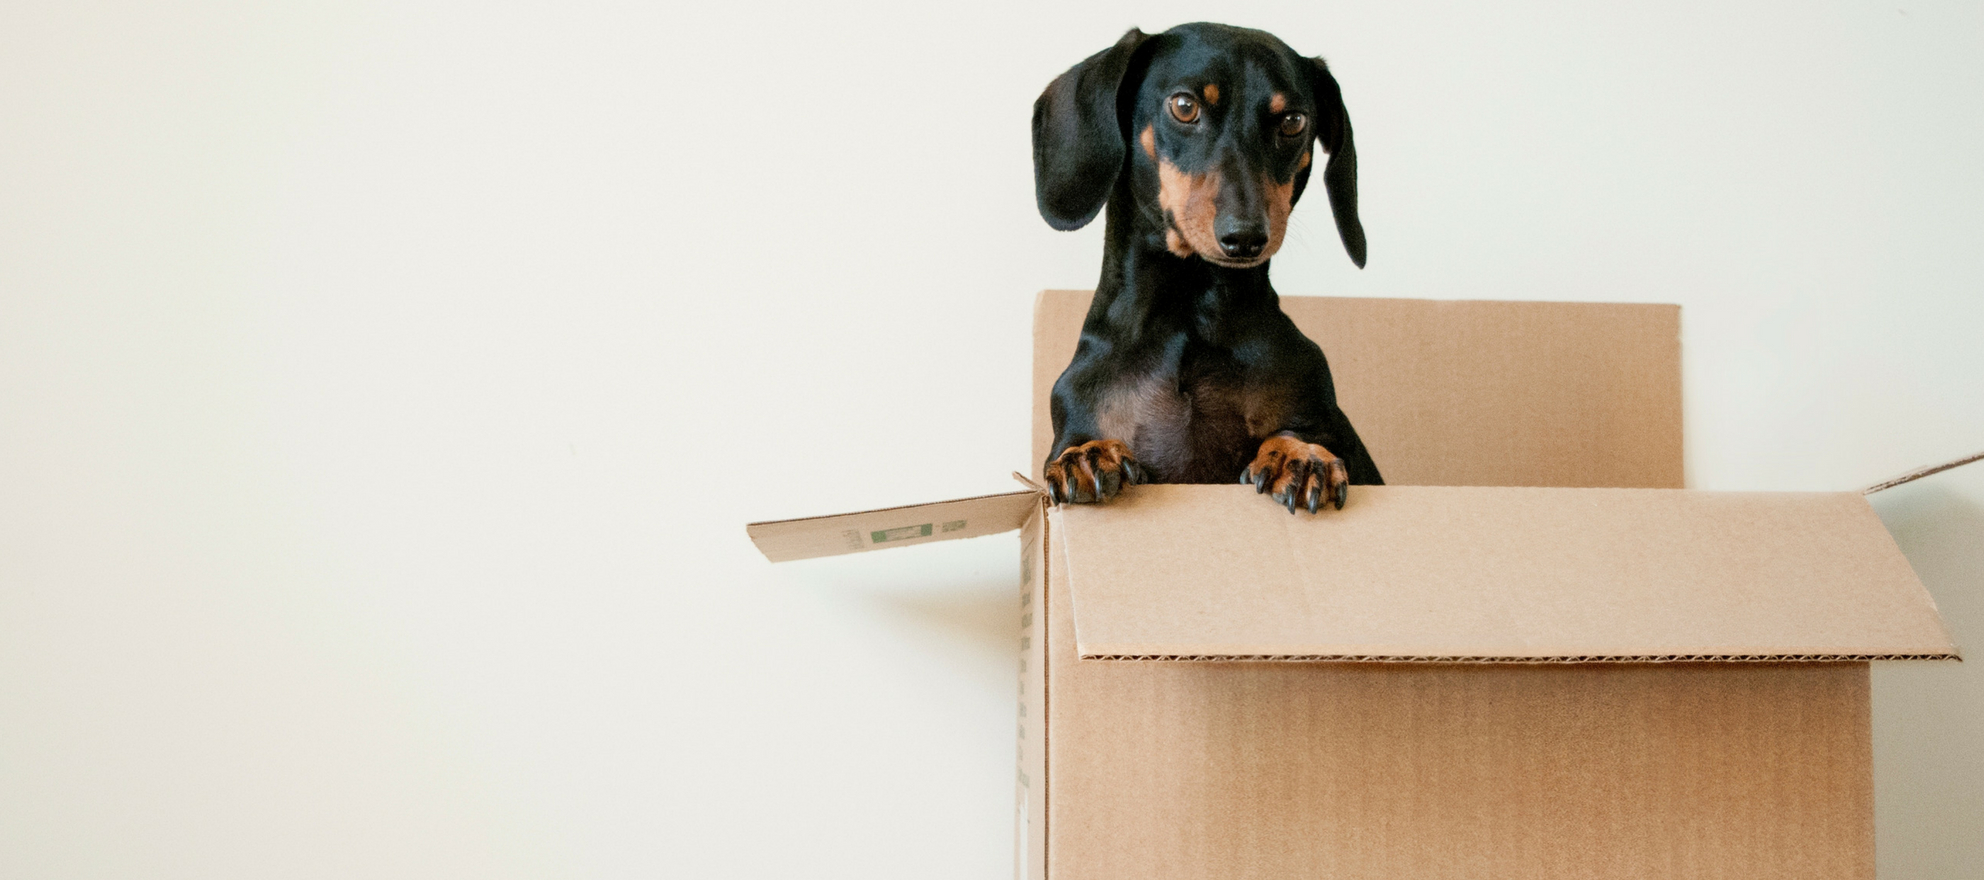 Moved, a home moving startup, closes $3.2 million funding round